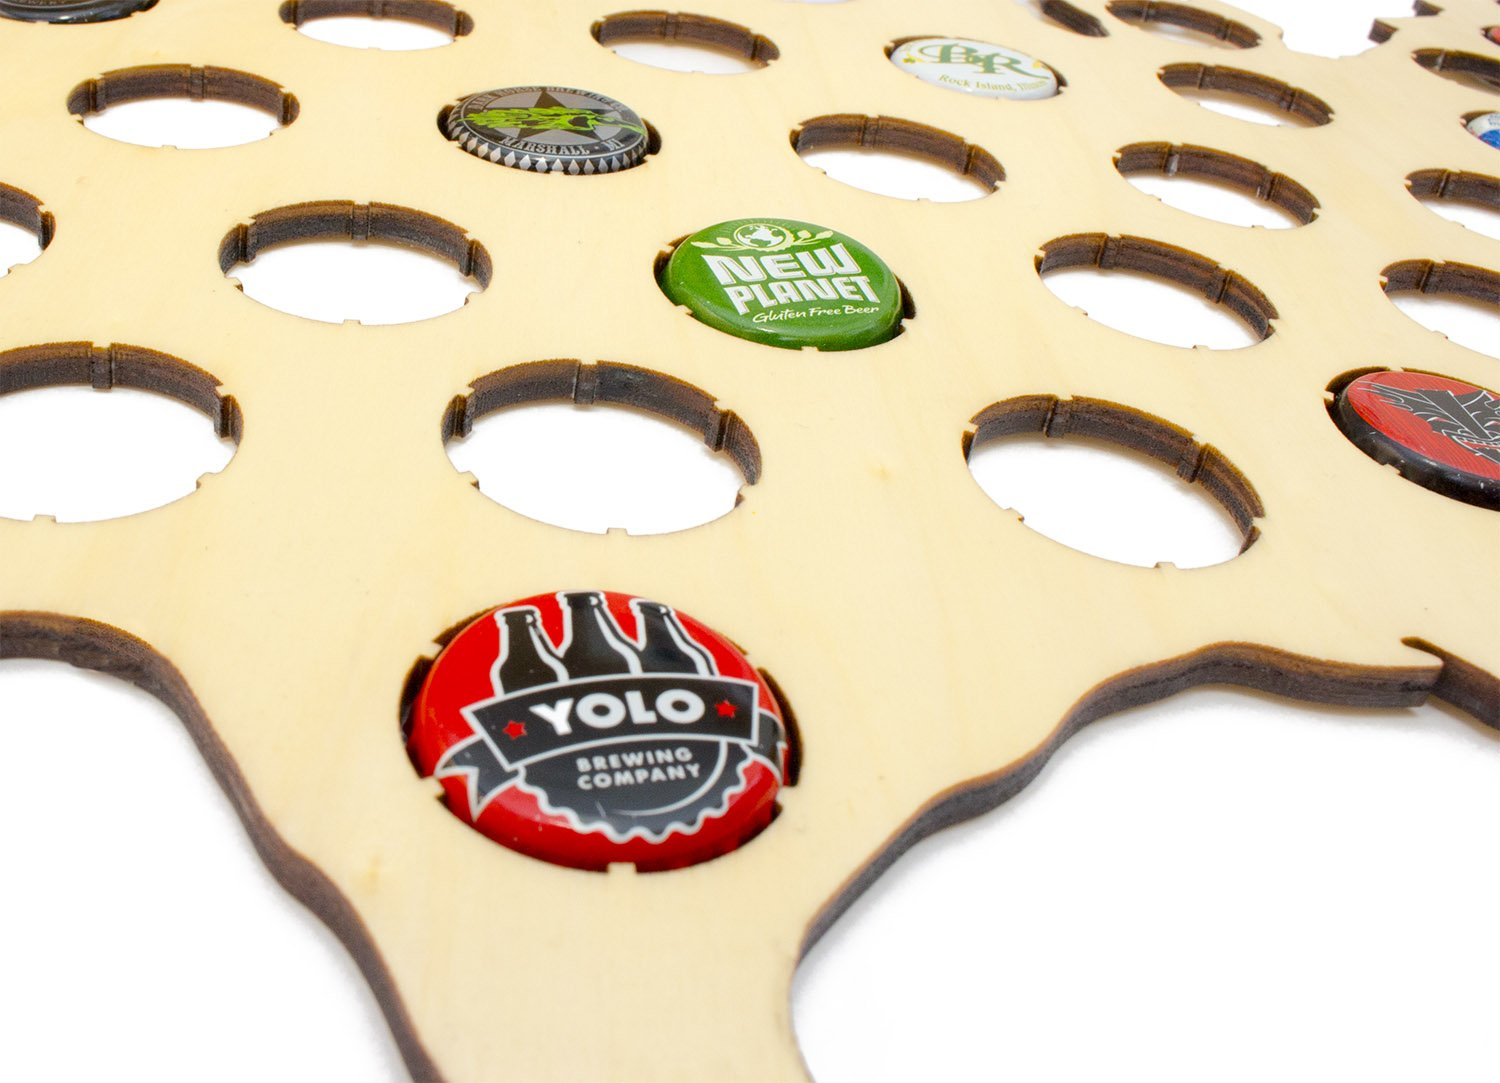 Amazoncom USA Beer Cap Map Holds Craft Beer Bottle Caps - Us beer cap map